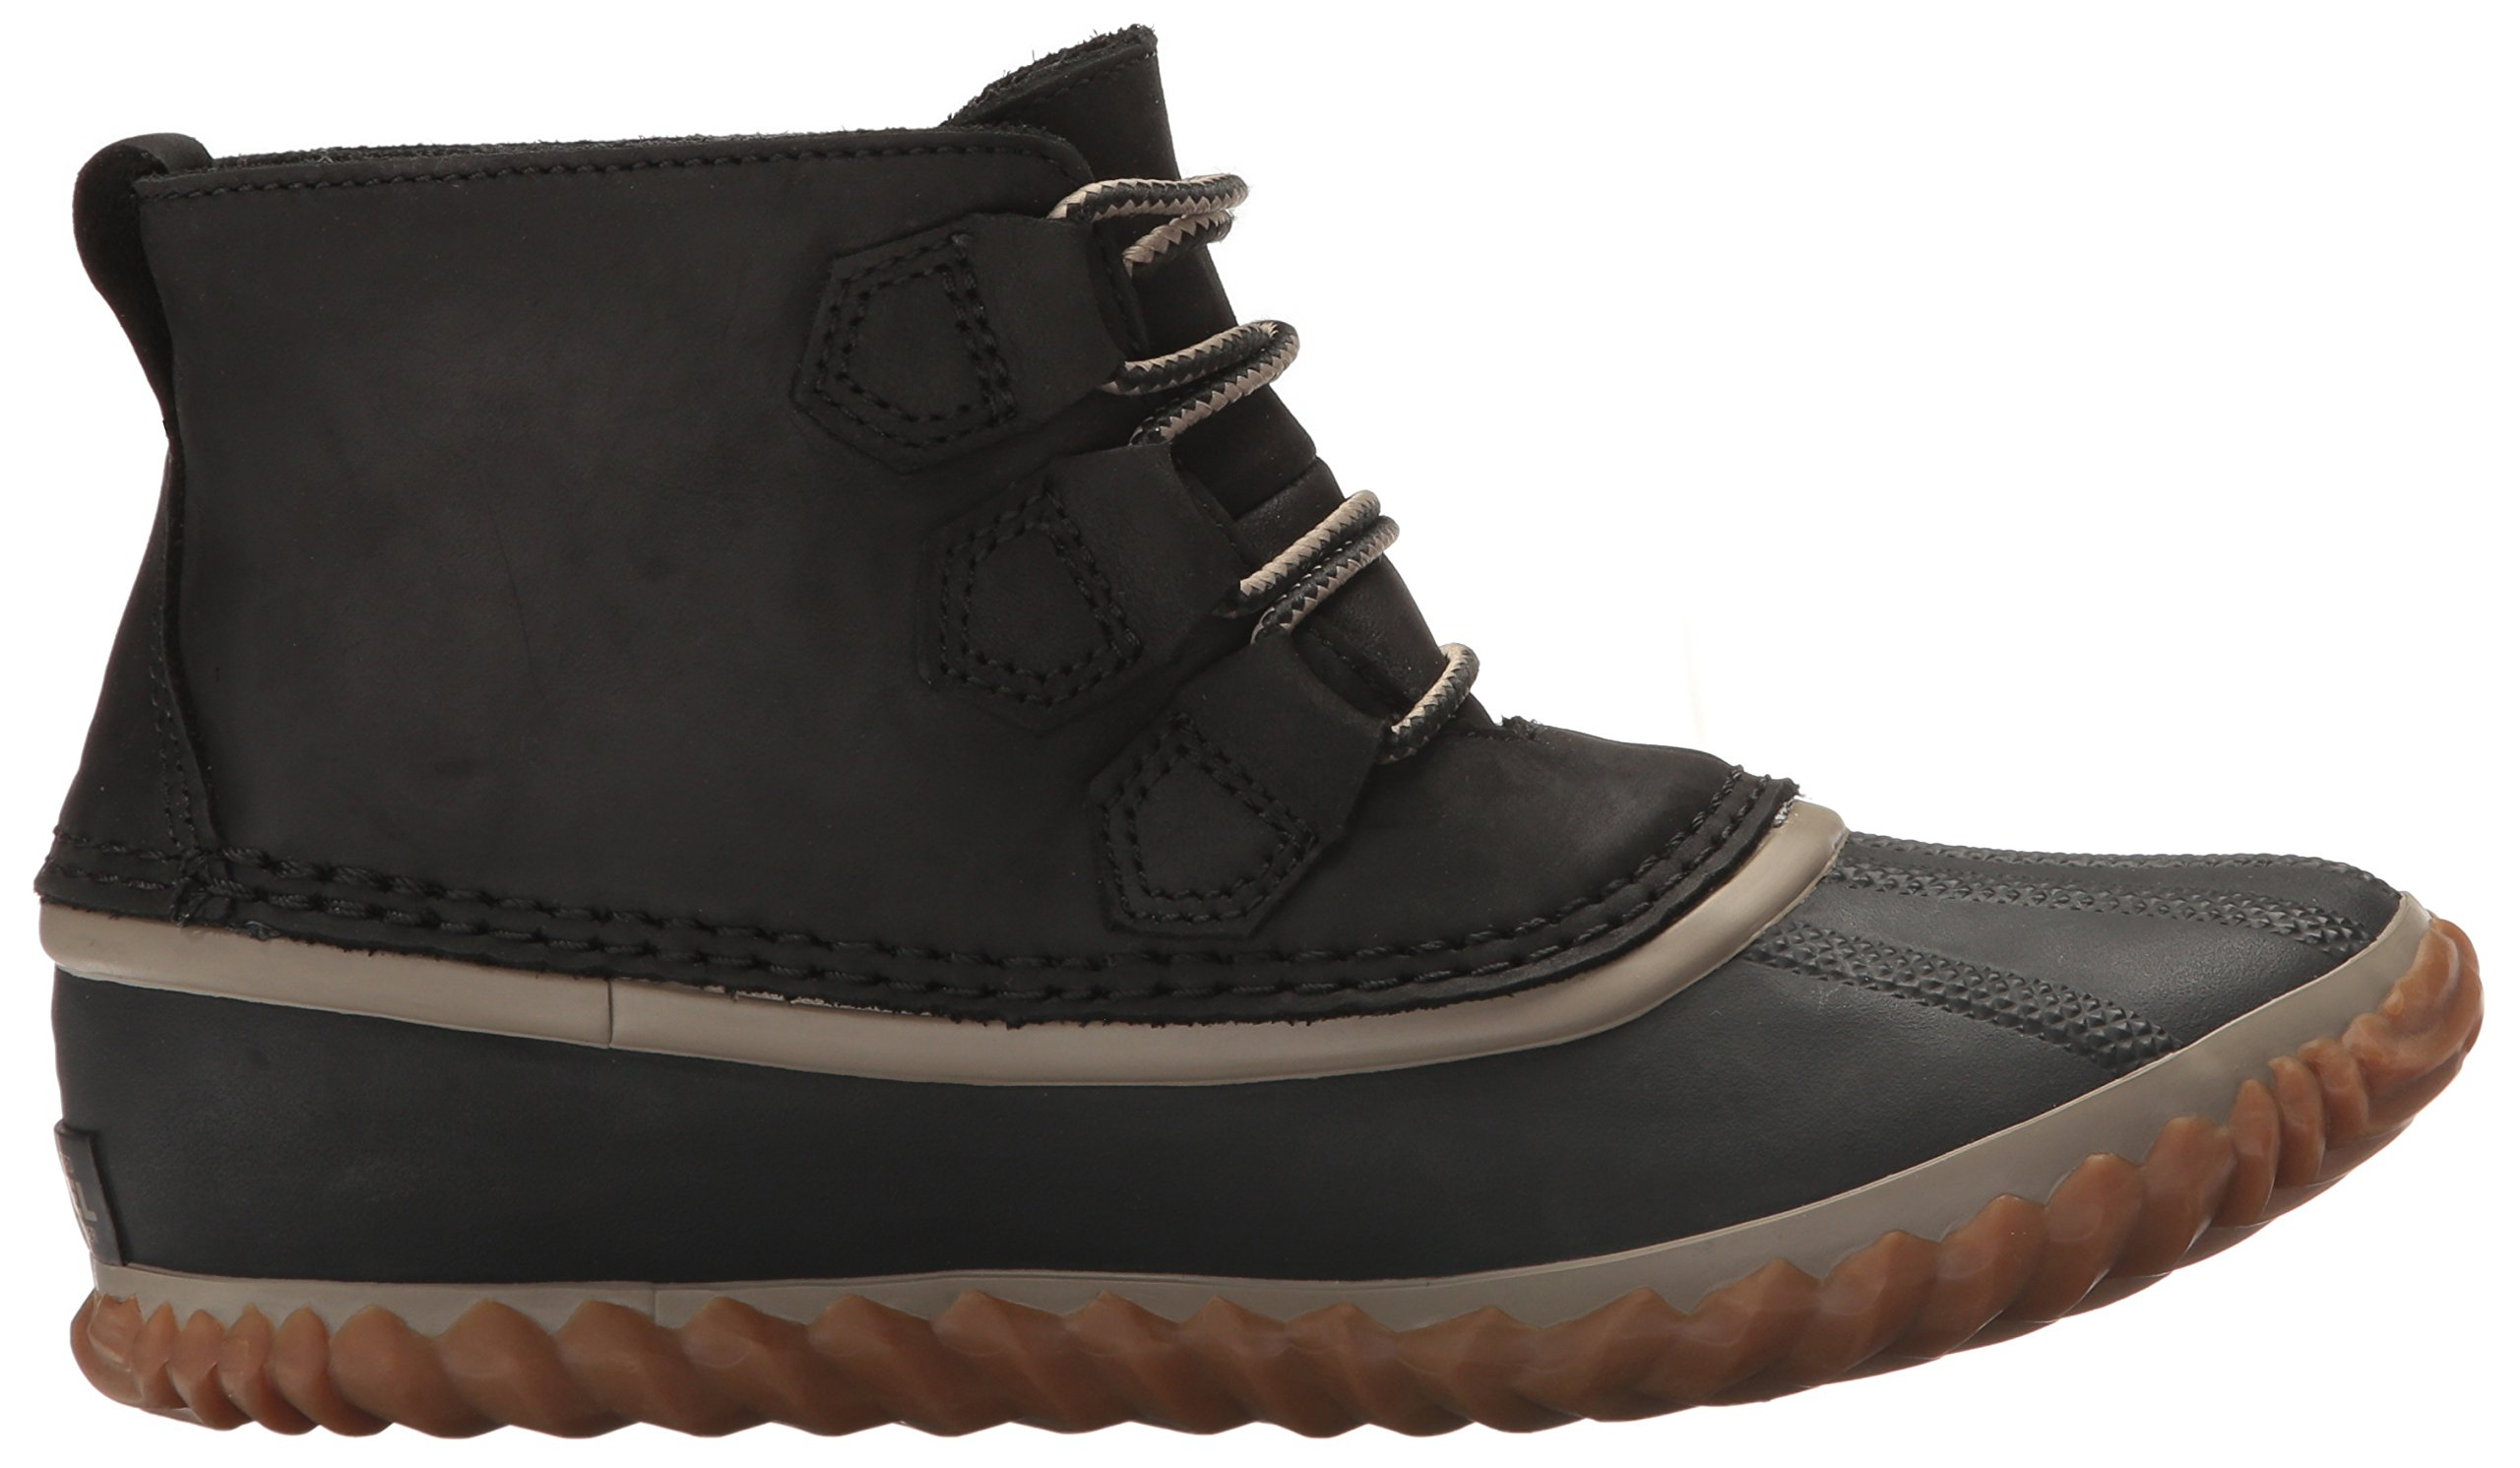 SOREL Women's Out N About Leather Rain Snow Boot, Black, 7.5 M US by SOREL (Image #8)